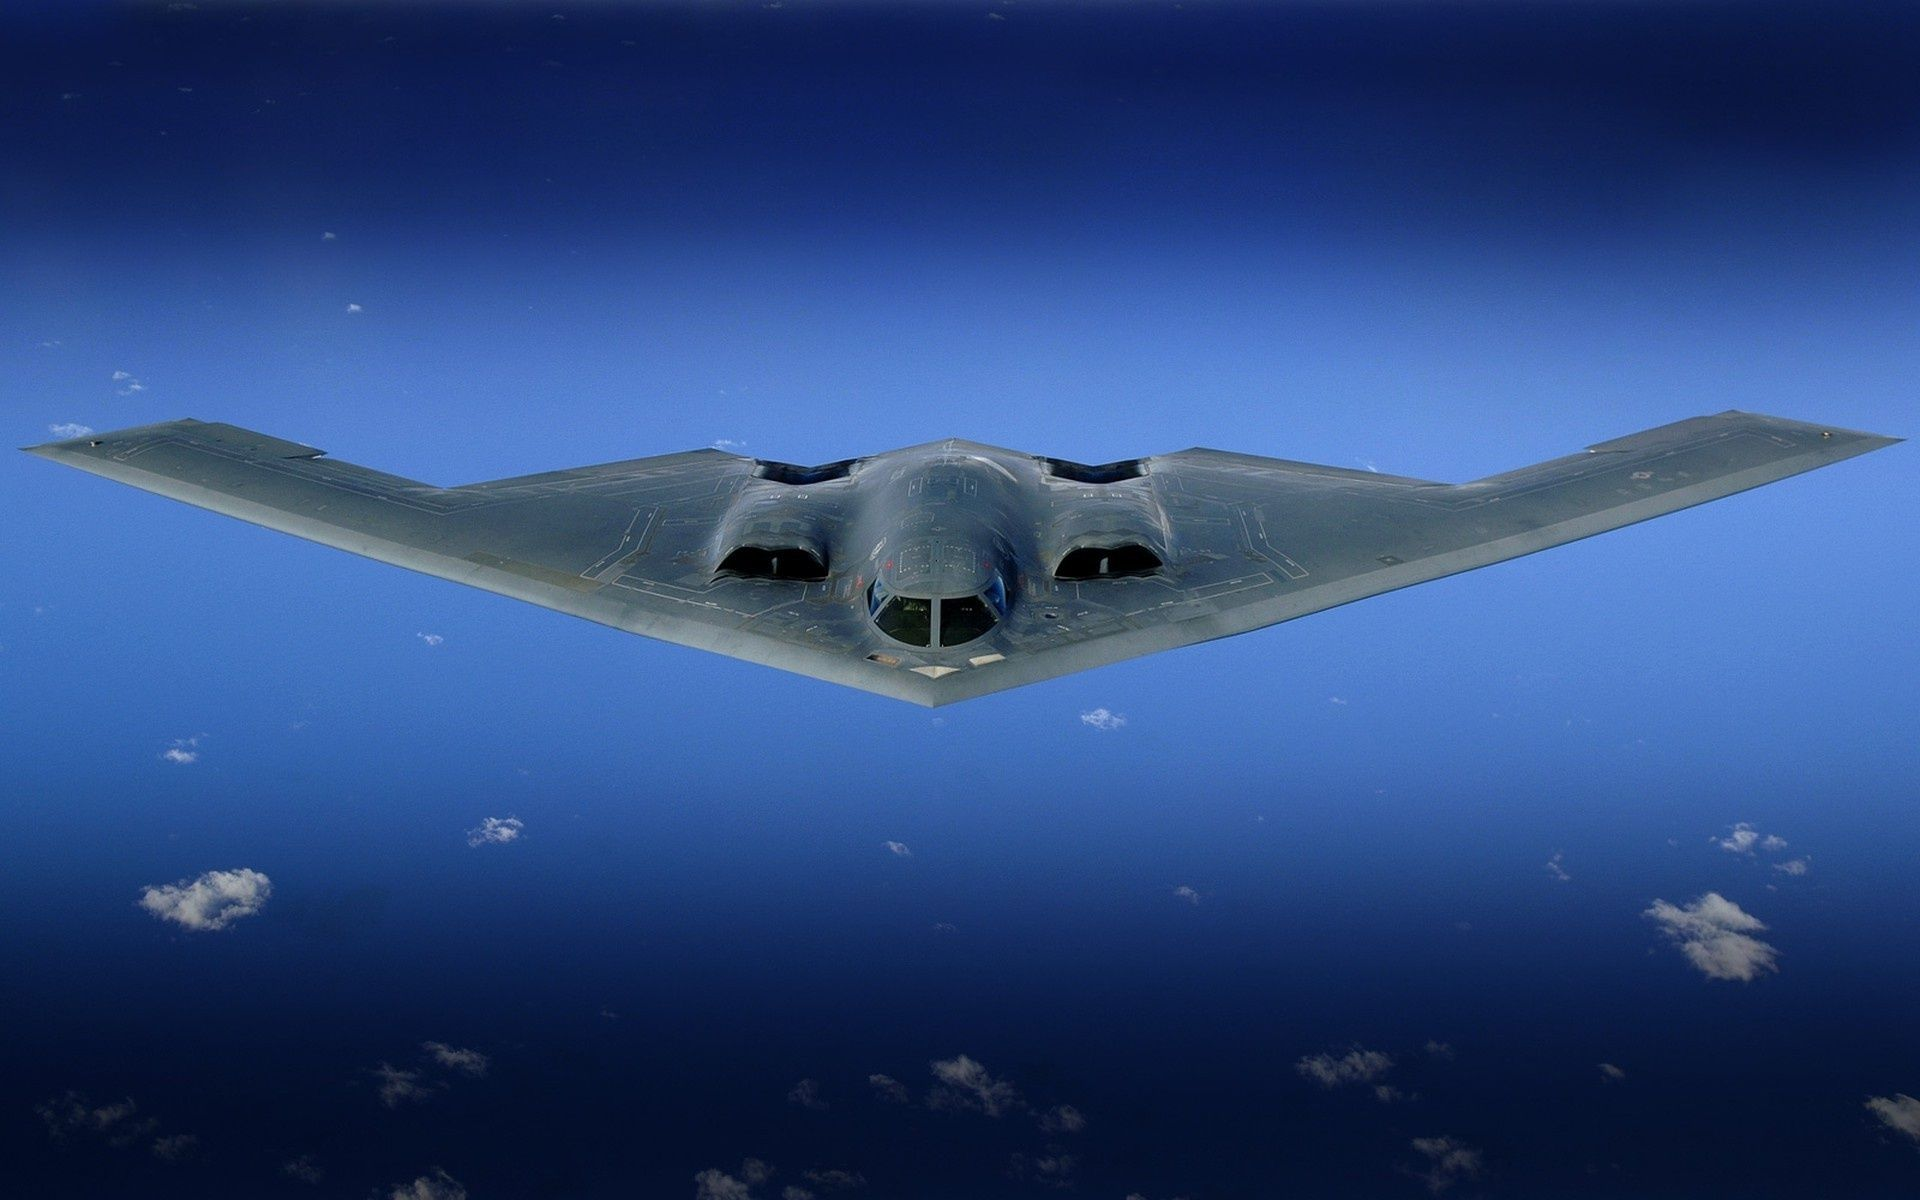 b2 Bomber Pictures